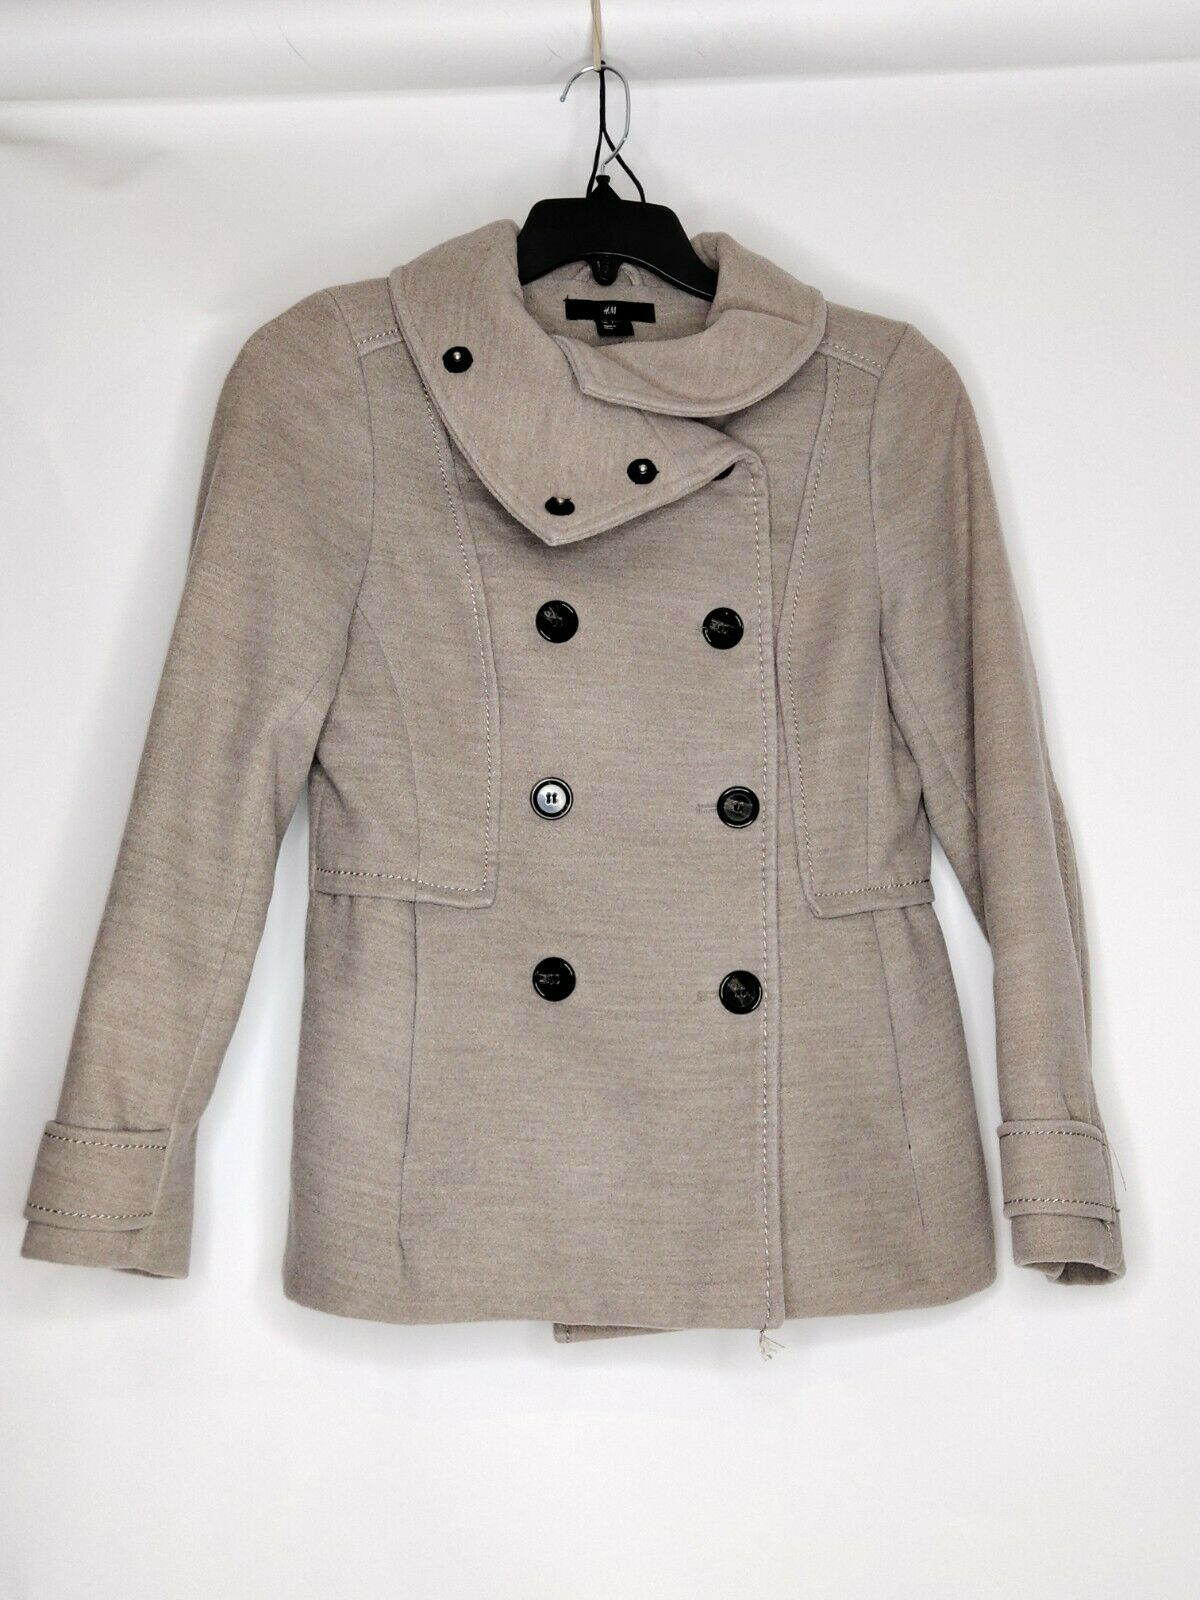 H&M Womens Size 6 Color Beige Double Breasted Big Button Long Sleeve Casual Coat